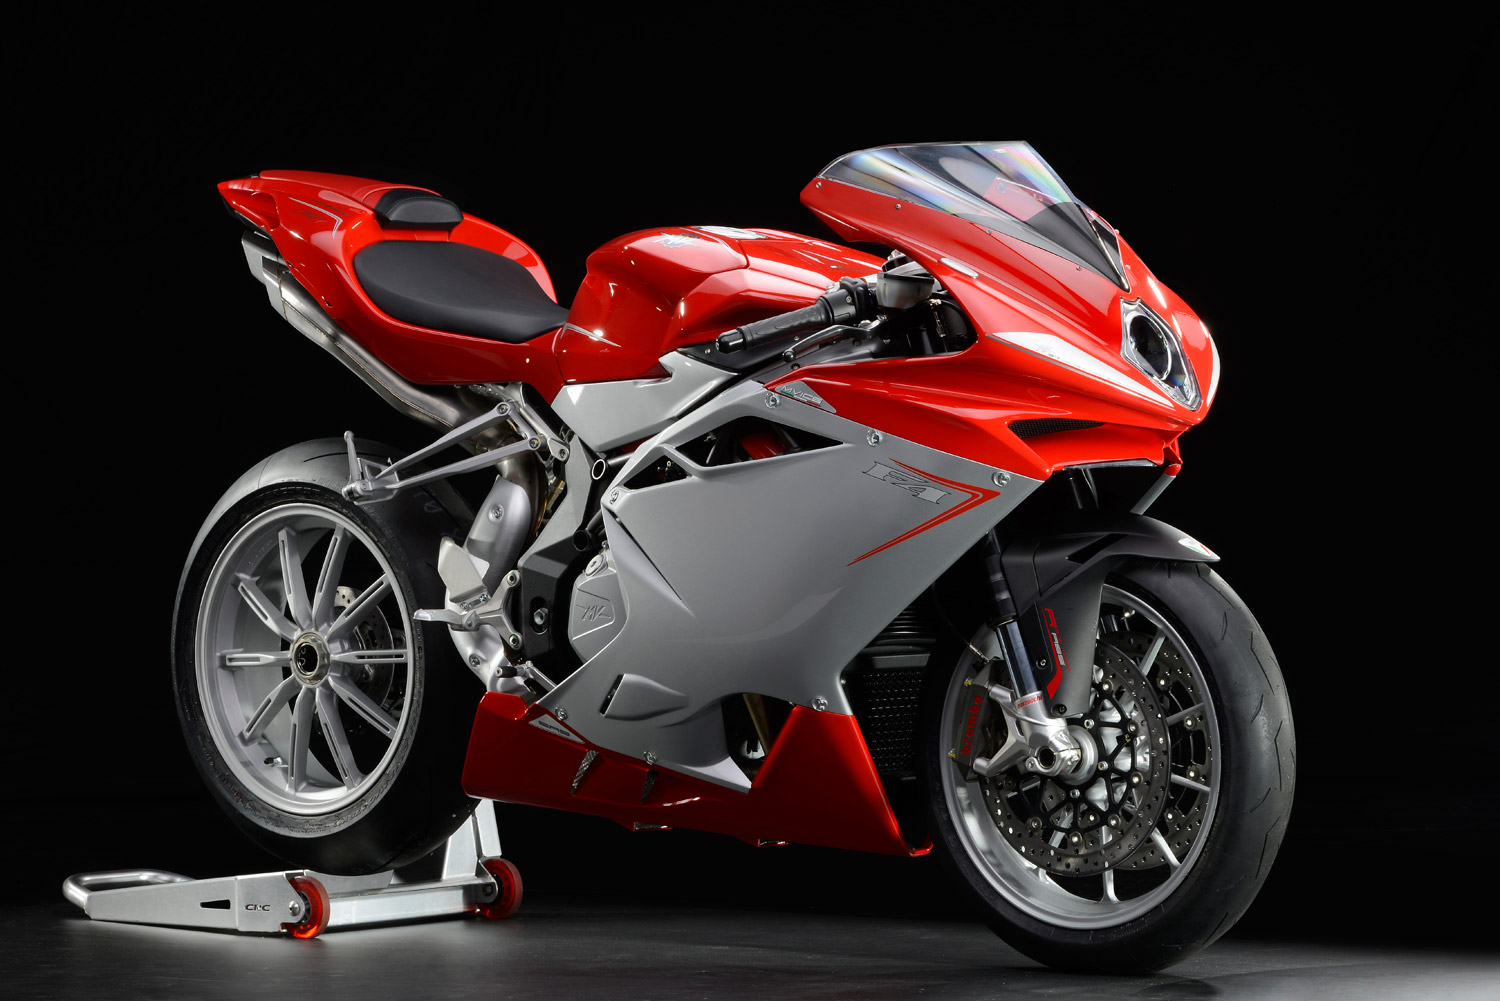 2014 MV Agusta F4 Pictures, Photos, Wallpapers.